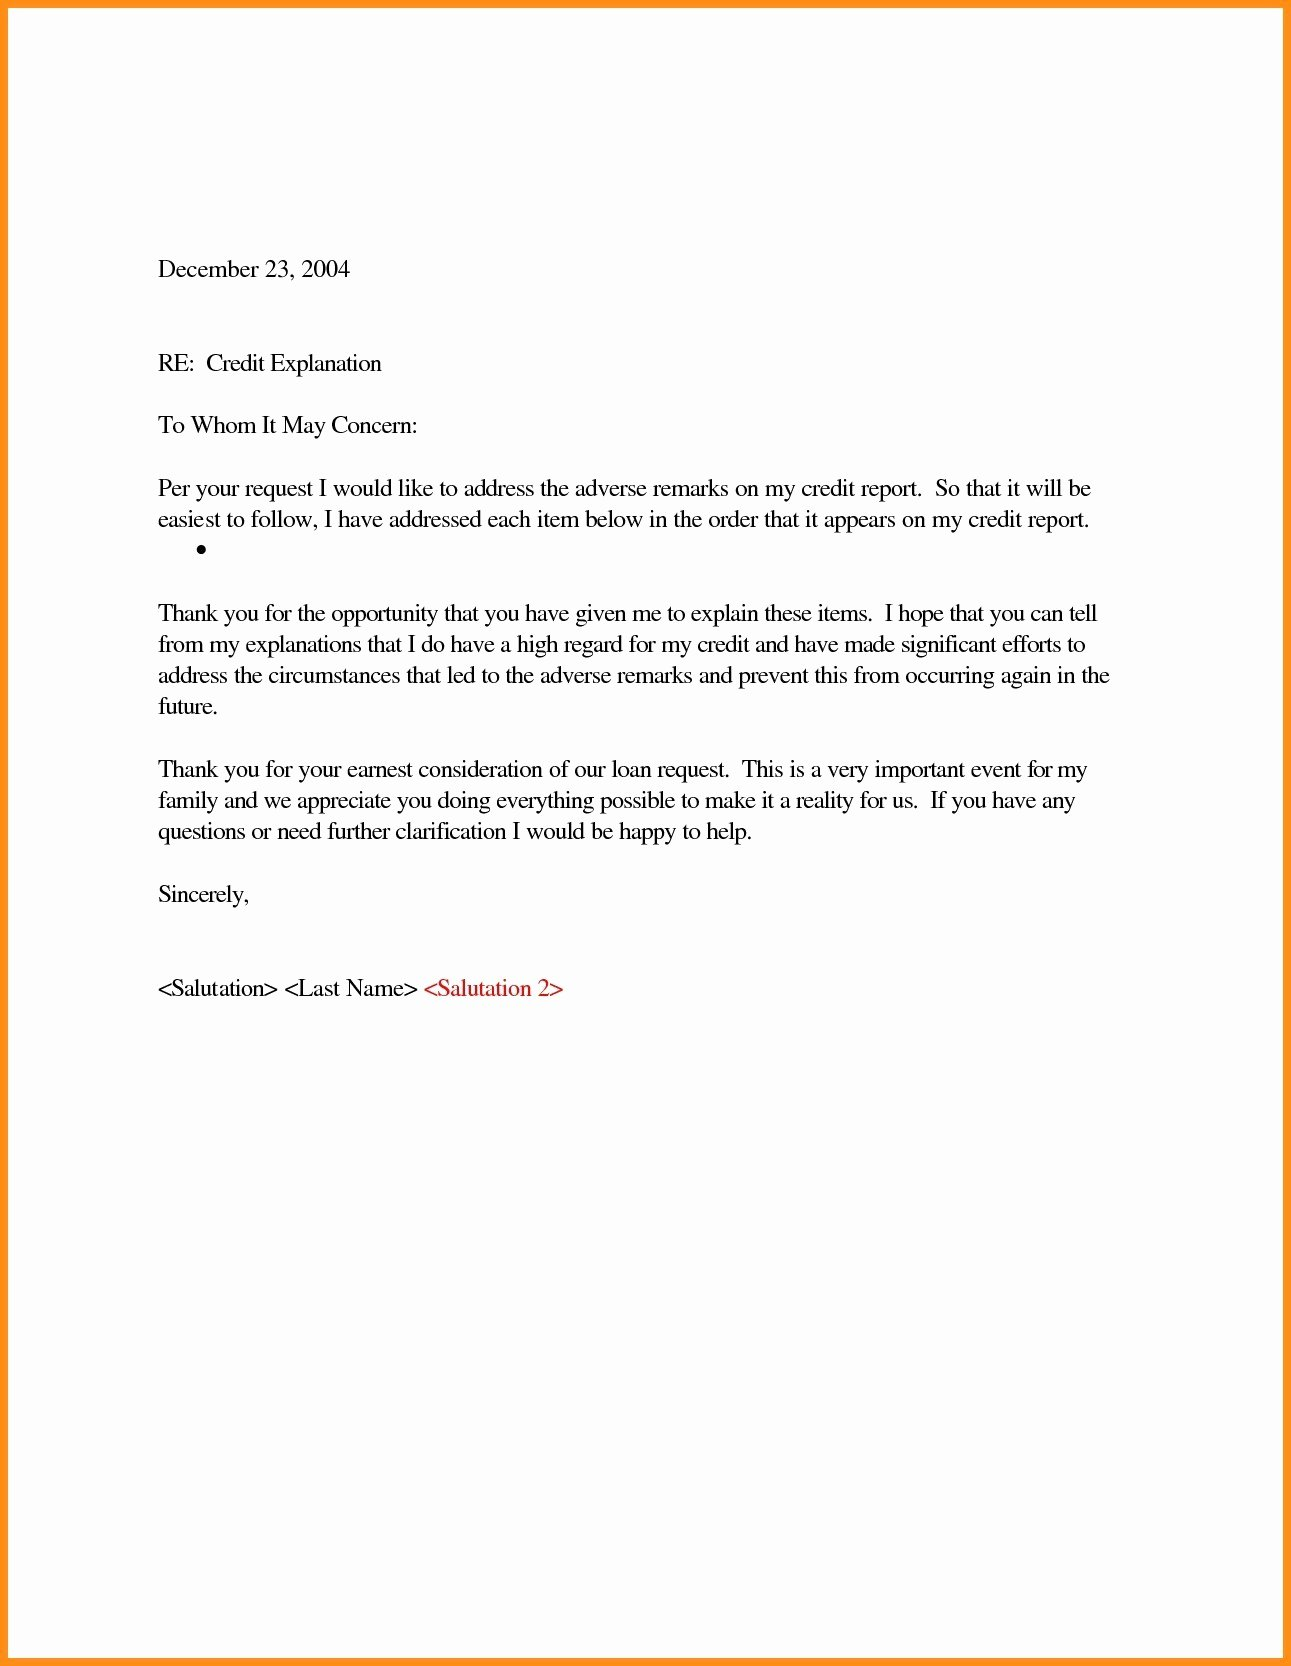 Late Payment Explanation Letter for Mortgage Best Of Explanation Letter Sample for Discrepancy Archives